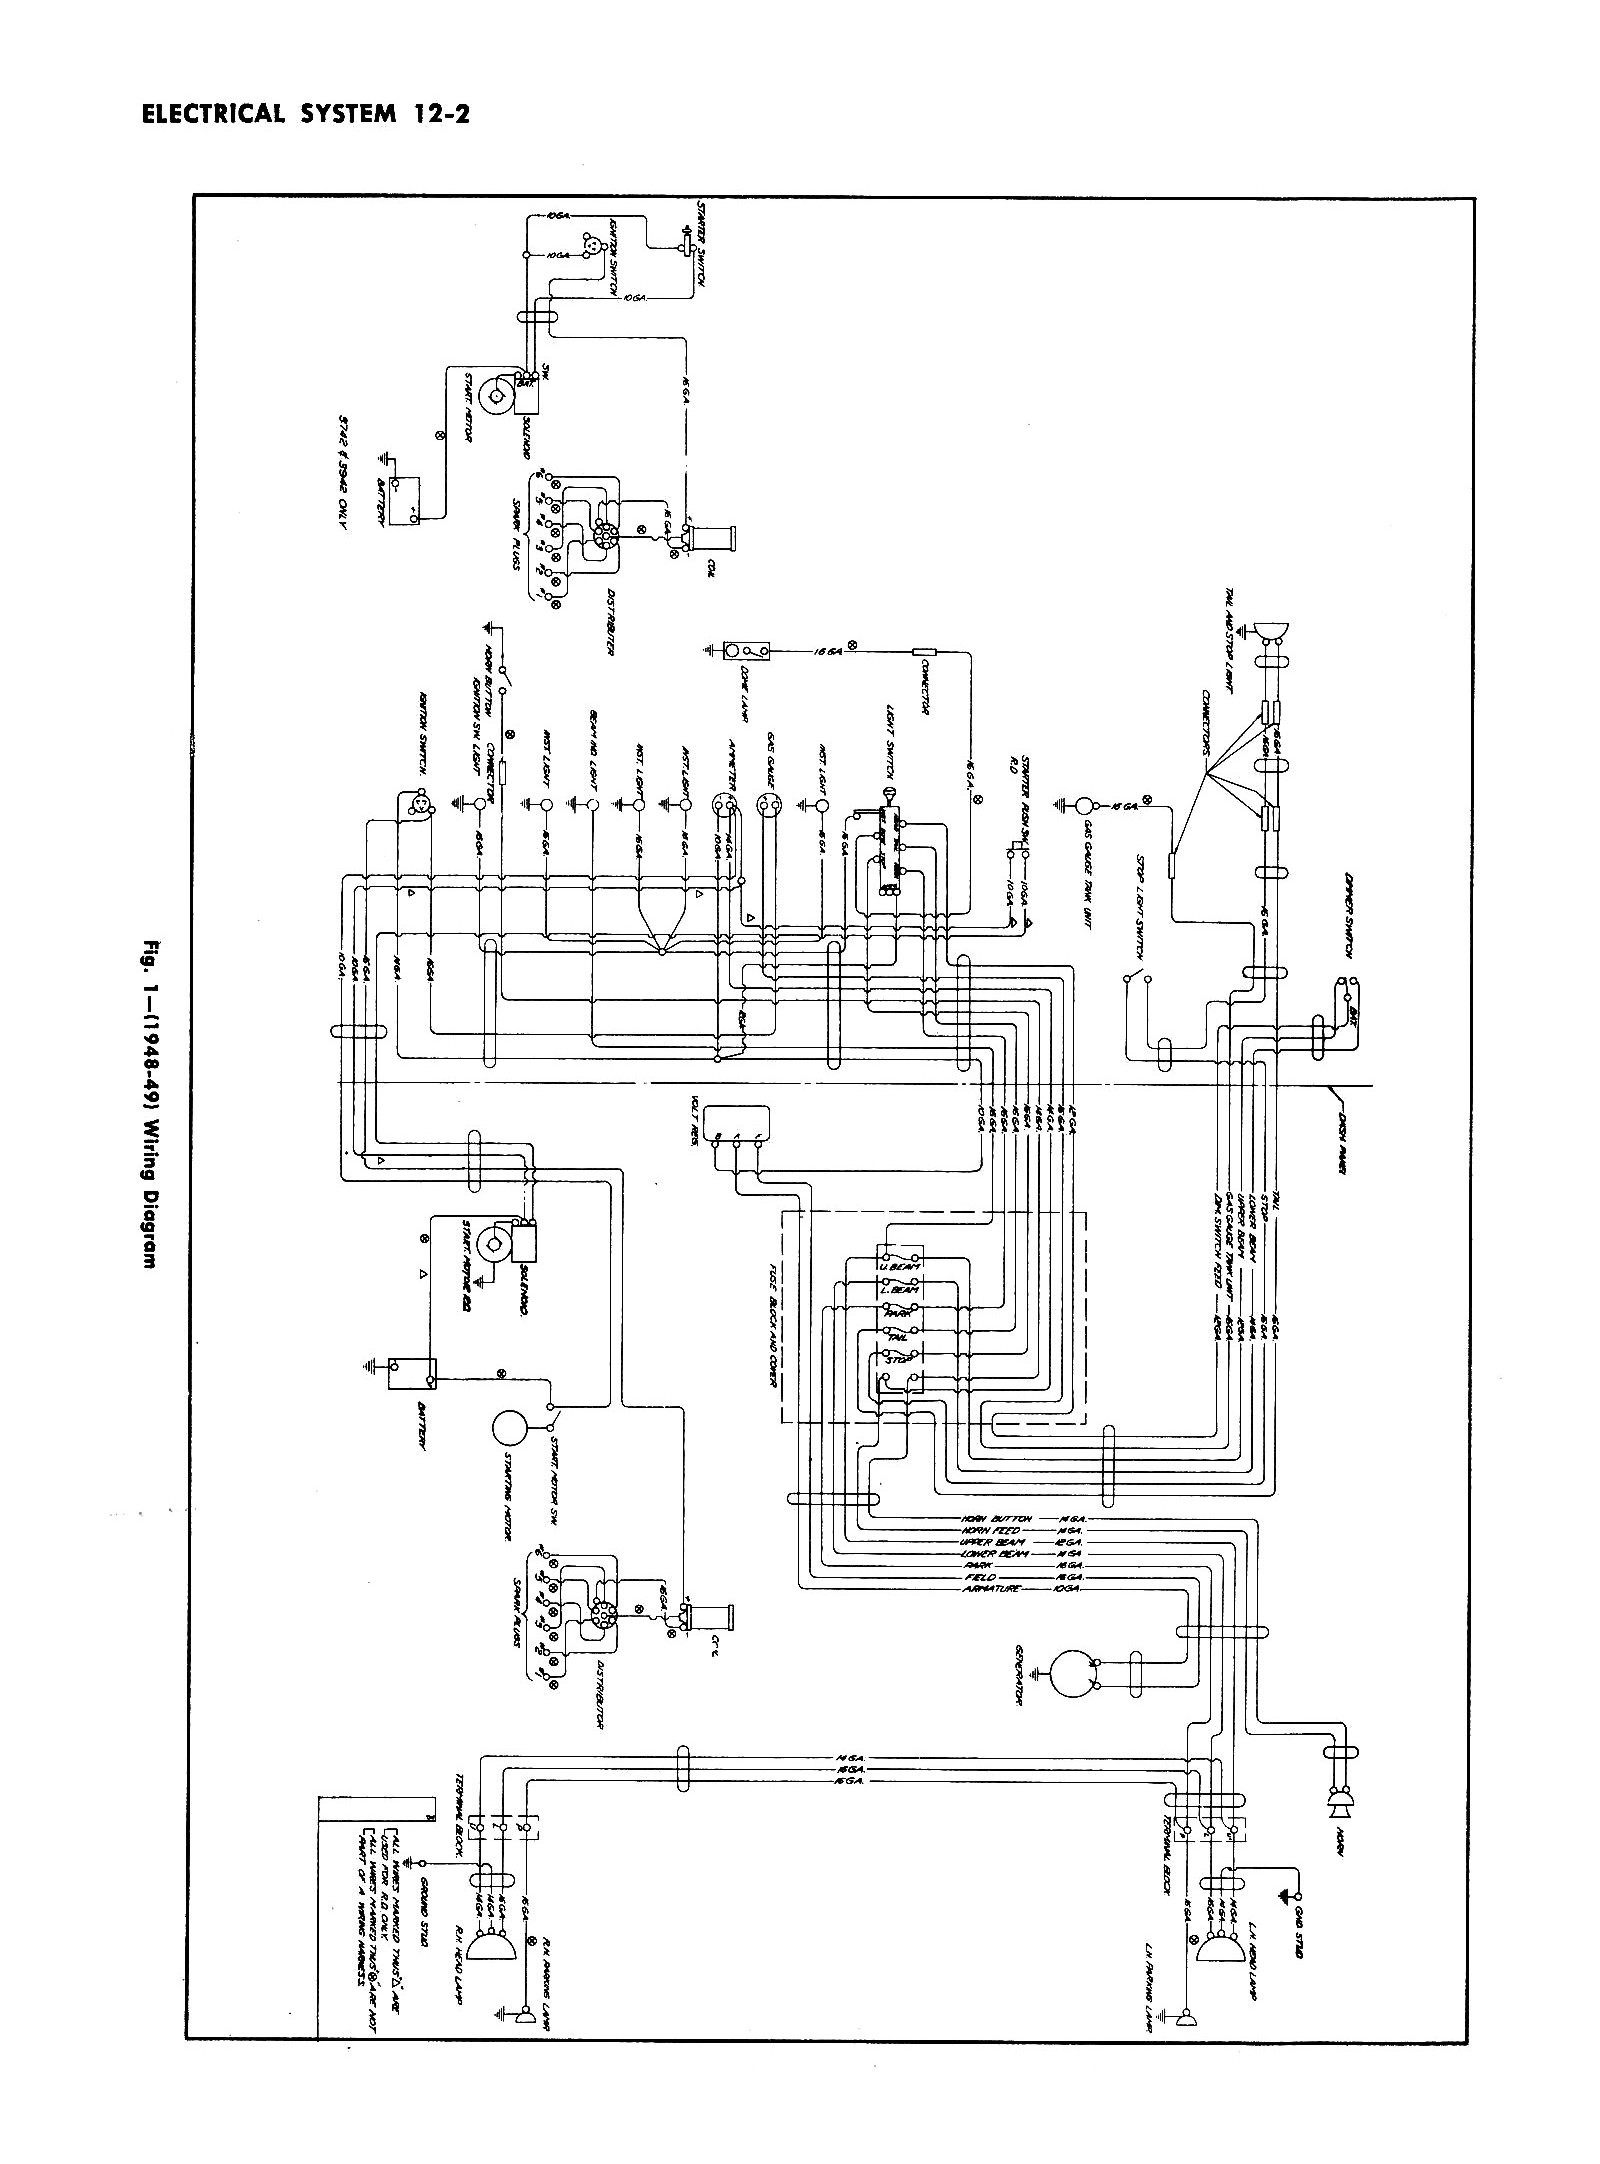 48car gmc ke switch wiring diagram wiring diagram simonand gm truck wiring harness at cita.asia